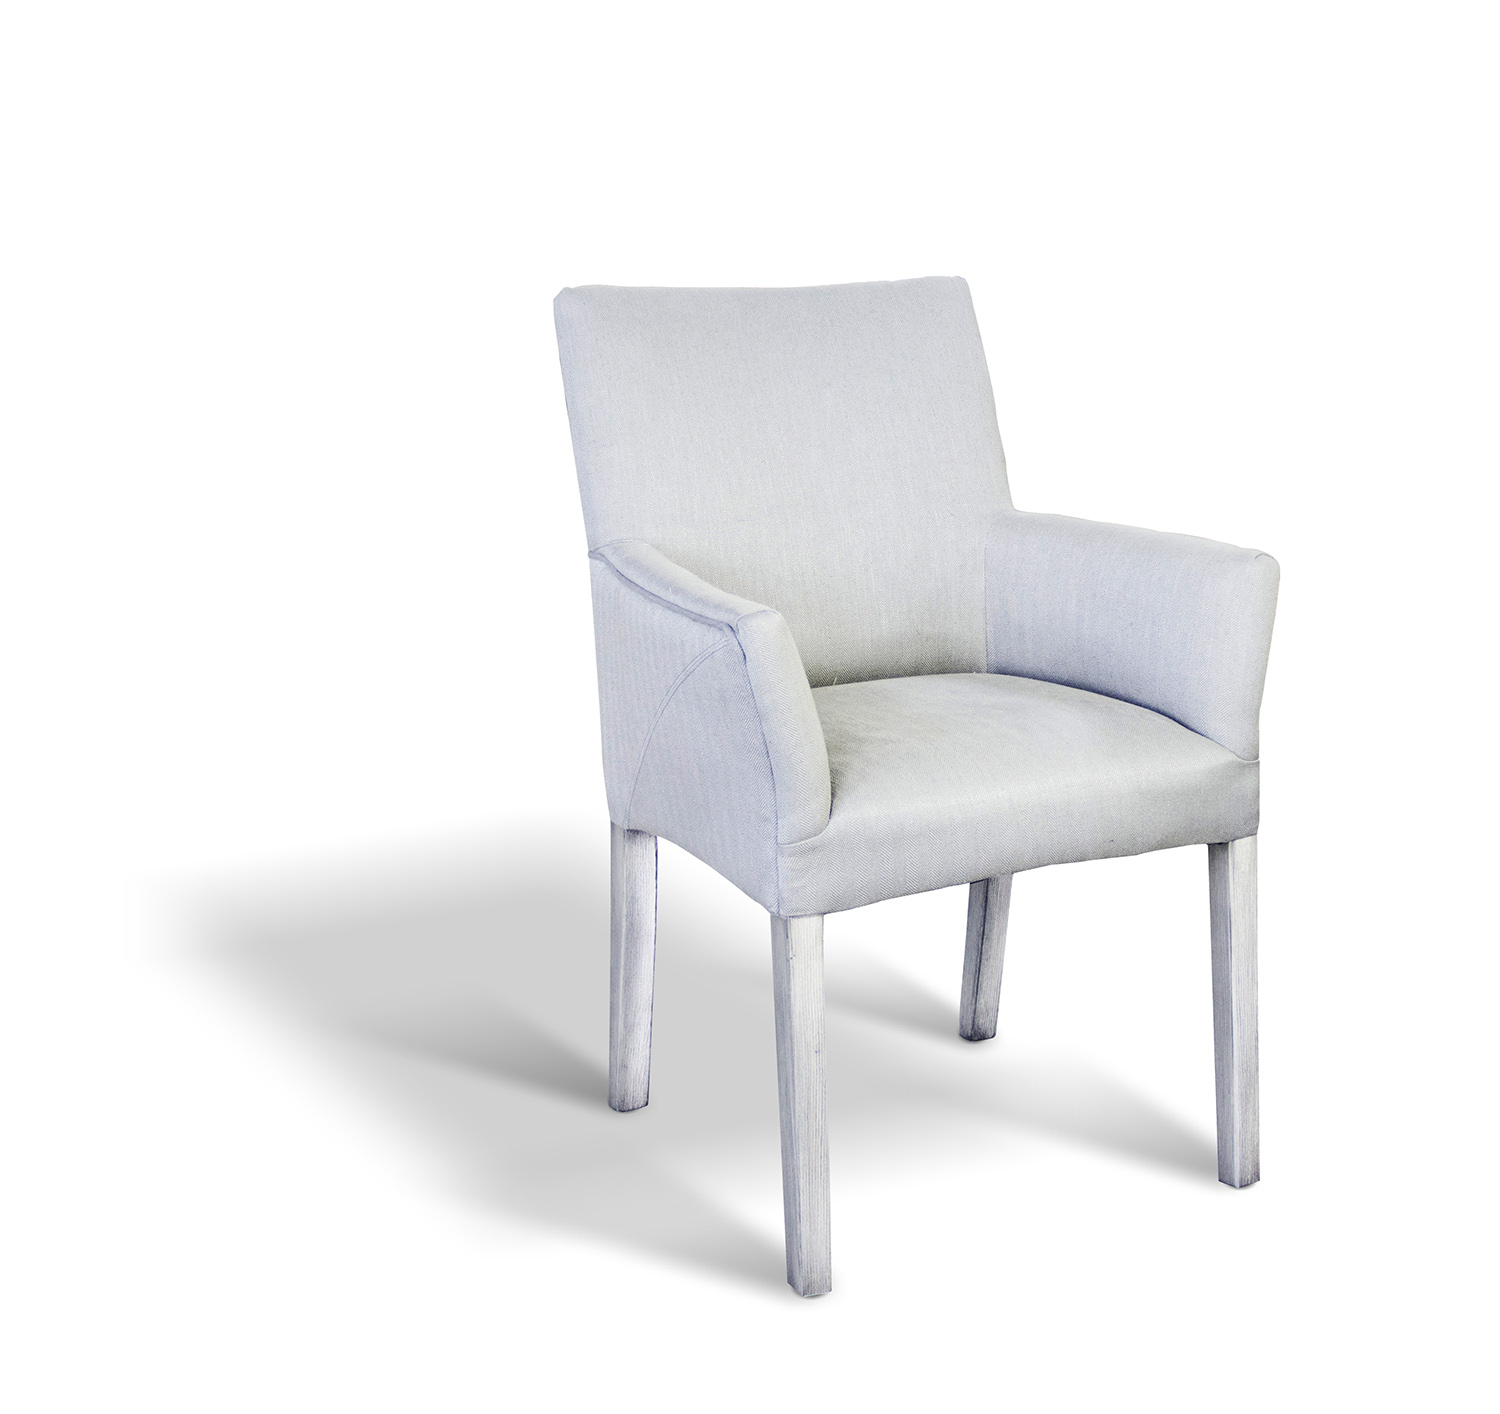 Cube chair chairs collection E atrix